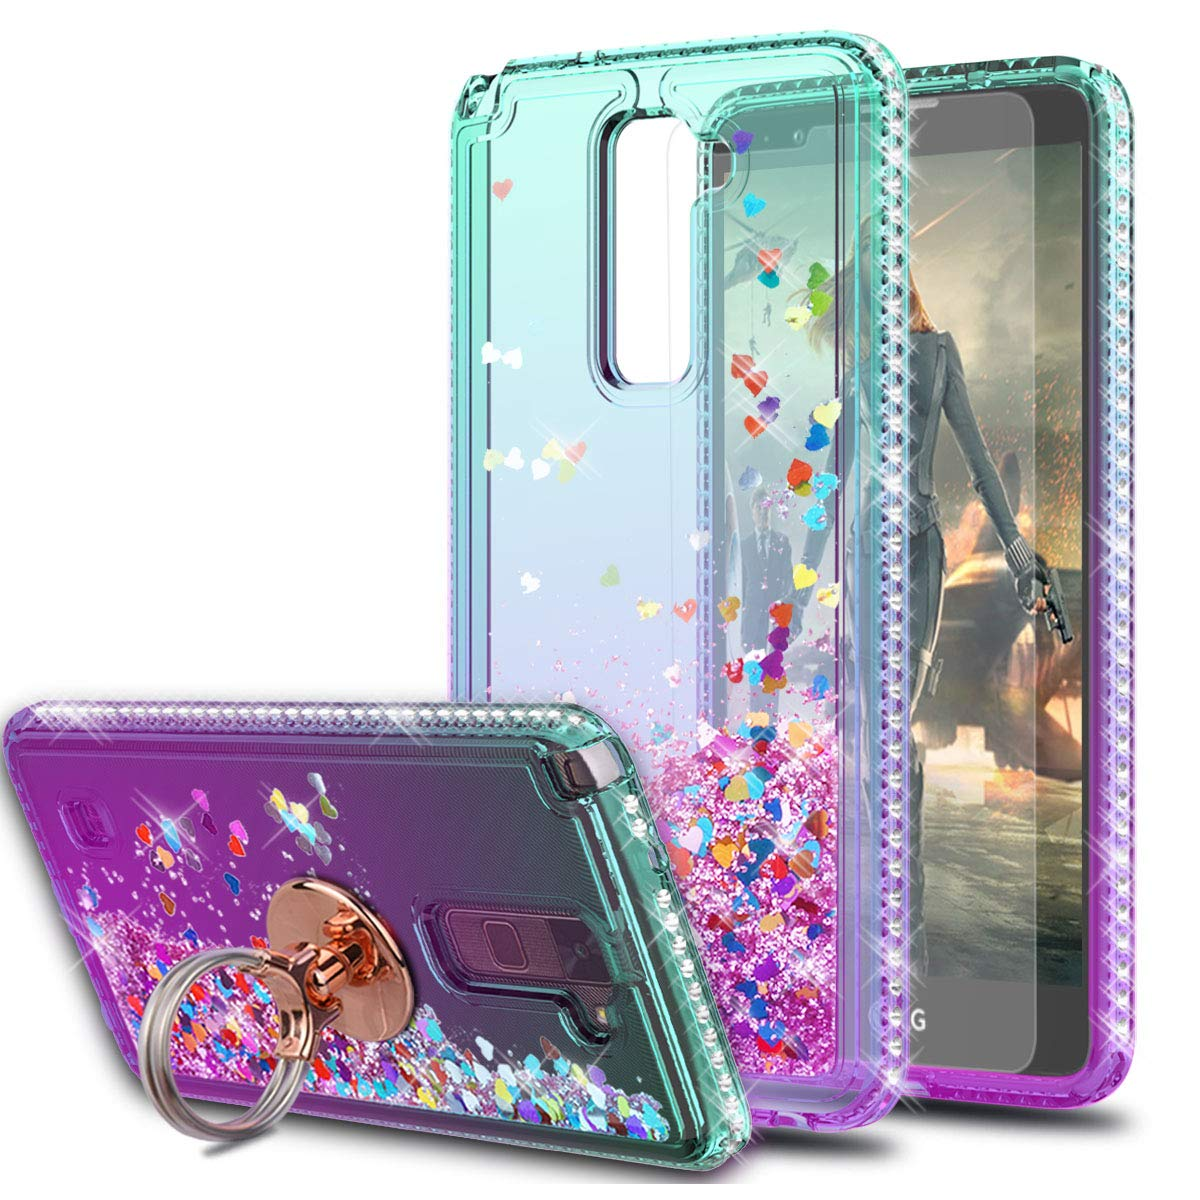 LG Stylo 2 / Stylo 2 Plus/Stylo 2V / Stylus 2 Case with HD Screen Protector with Ring Holder,KaiMai Glitter Moving Quicksand Clear Cute Shiny Phone Case for LG LS775-Aqua/Purple Ring by KaiMai